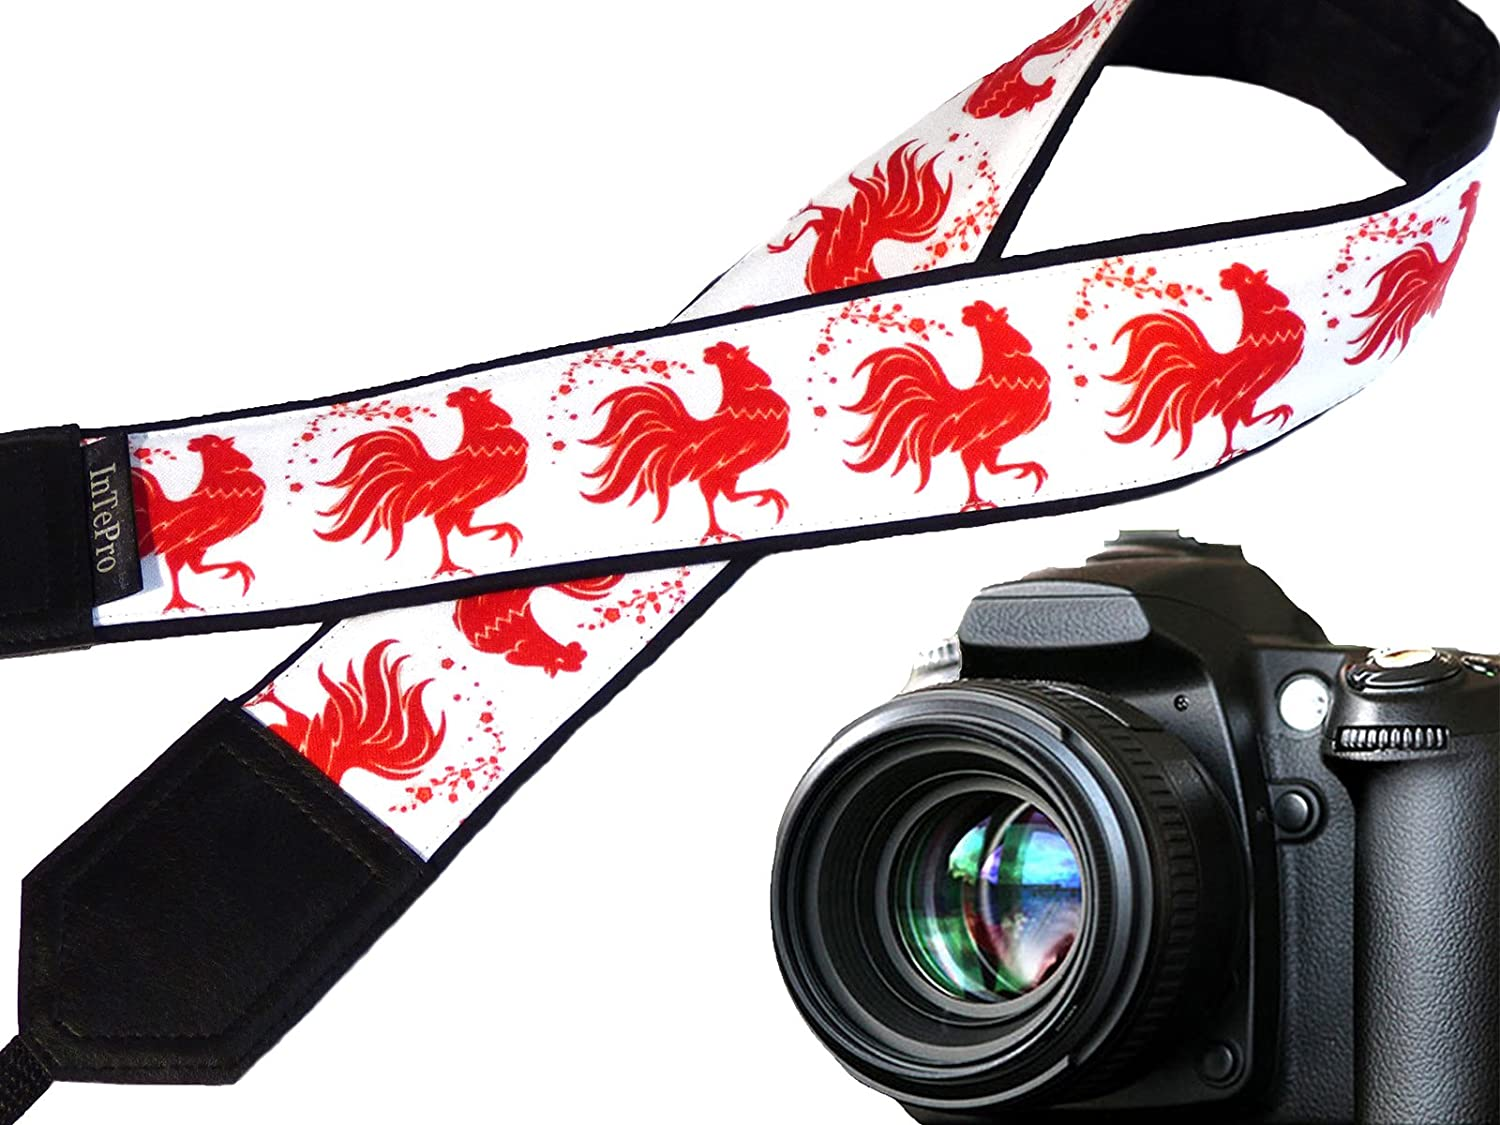 Code 00333 Red Rooster Camera Strap Red and White Camera Accessory Stylized Cock Fire Rooster Symbol 2017 Padded Camera Strap New Year Gift